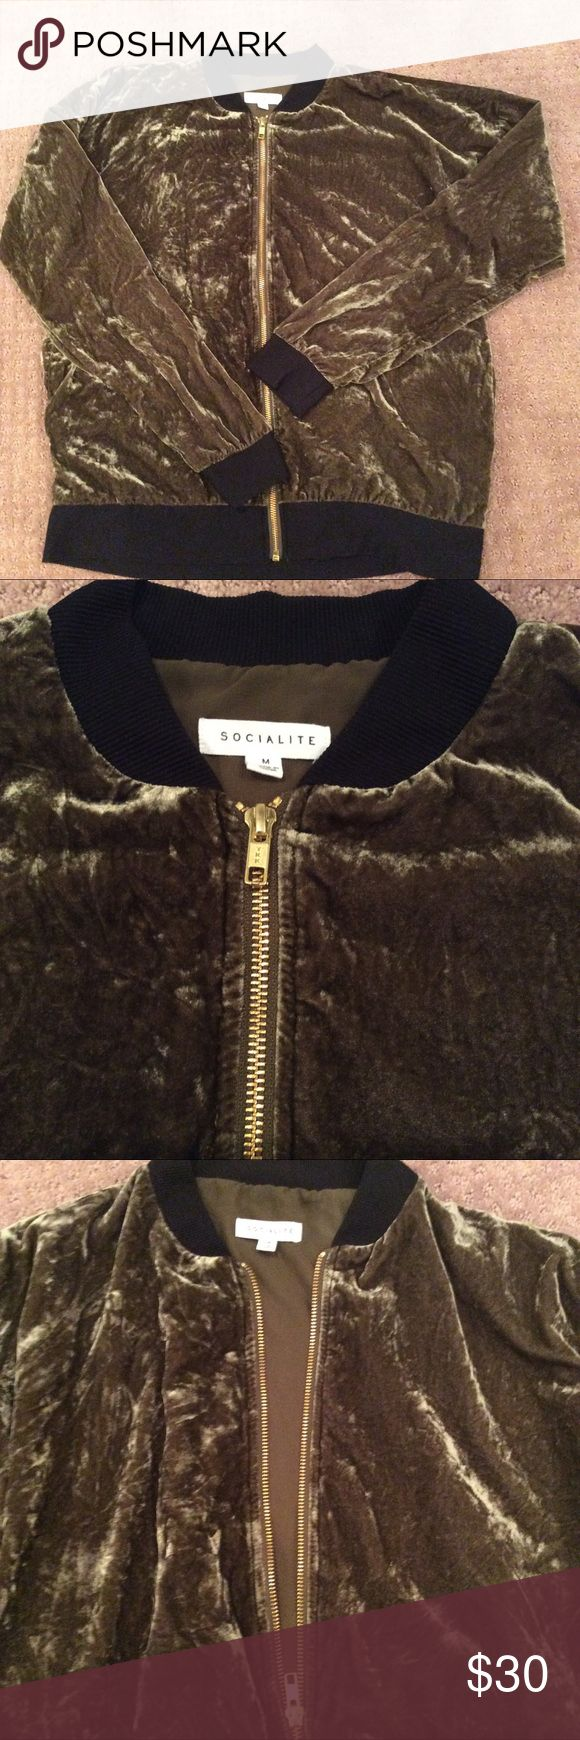 """Crushed velvet army green bomber jacket On trend, goes with everything. Lightweight. Gold zipper, black ribbed waist and cuffs. Loose fitting. Bottom waist band is 20"""" flat. Across chest is 22"""" flat. Shoulder to waist is 24"""". Would definitely work for a larger size. 2 side pockets. Socialite Jackets & Coats"""